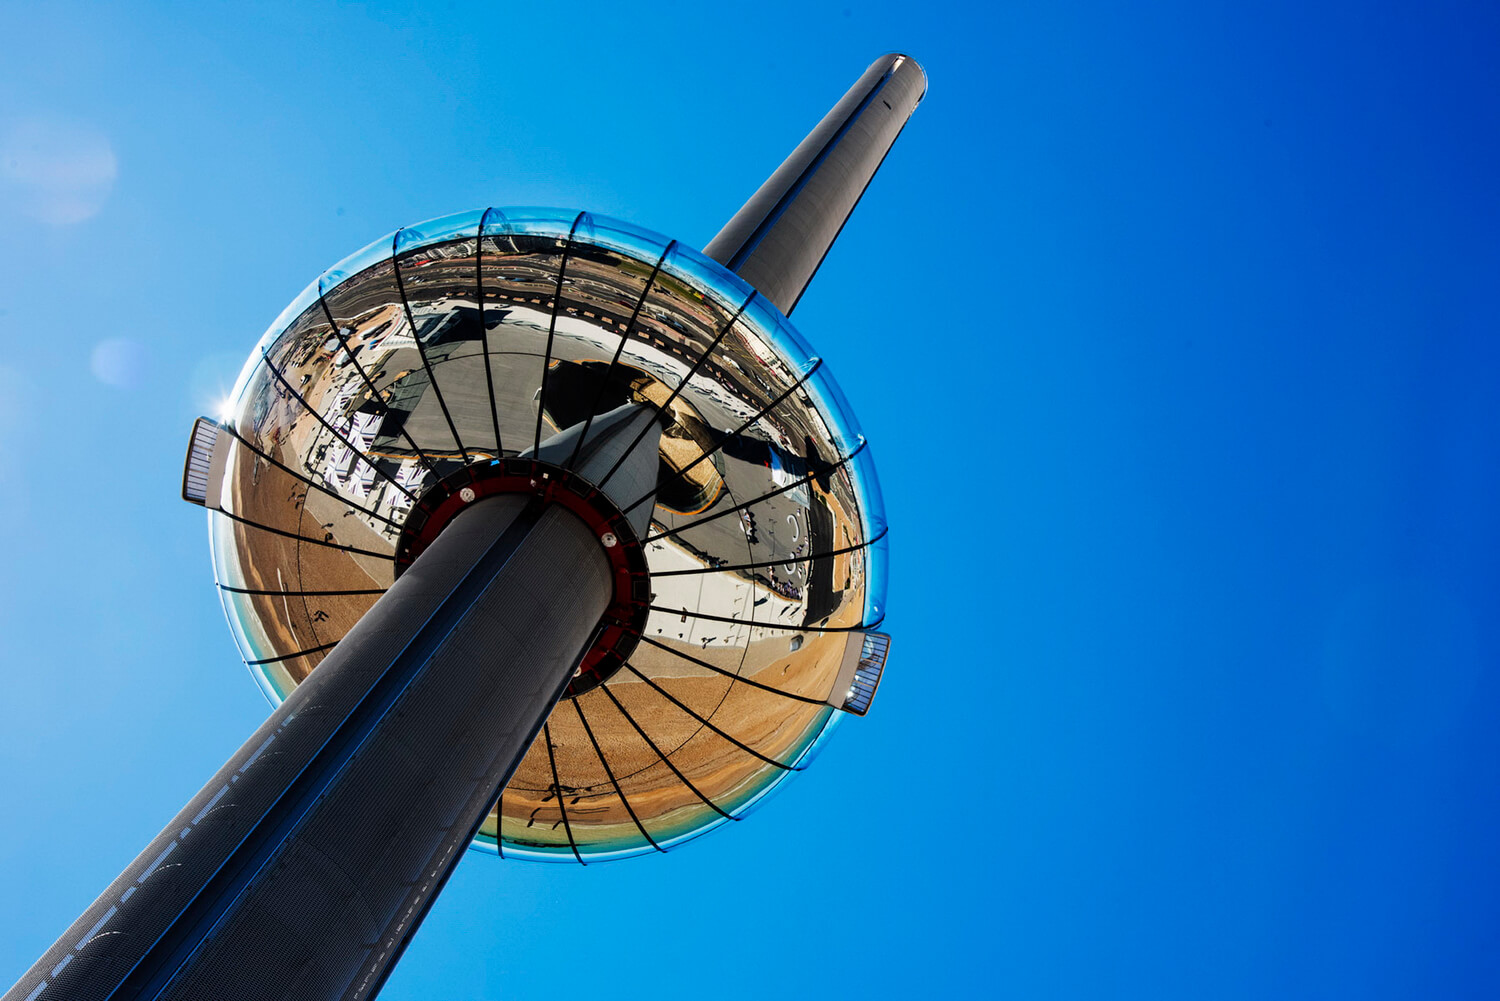 Architectural, artistic and diverse photography based in Birmingham for editorial and PR. British Airways i-360 travel pod in Brighton